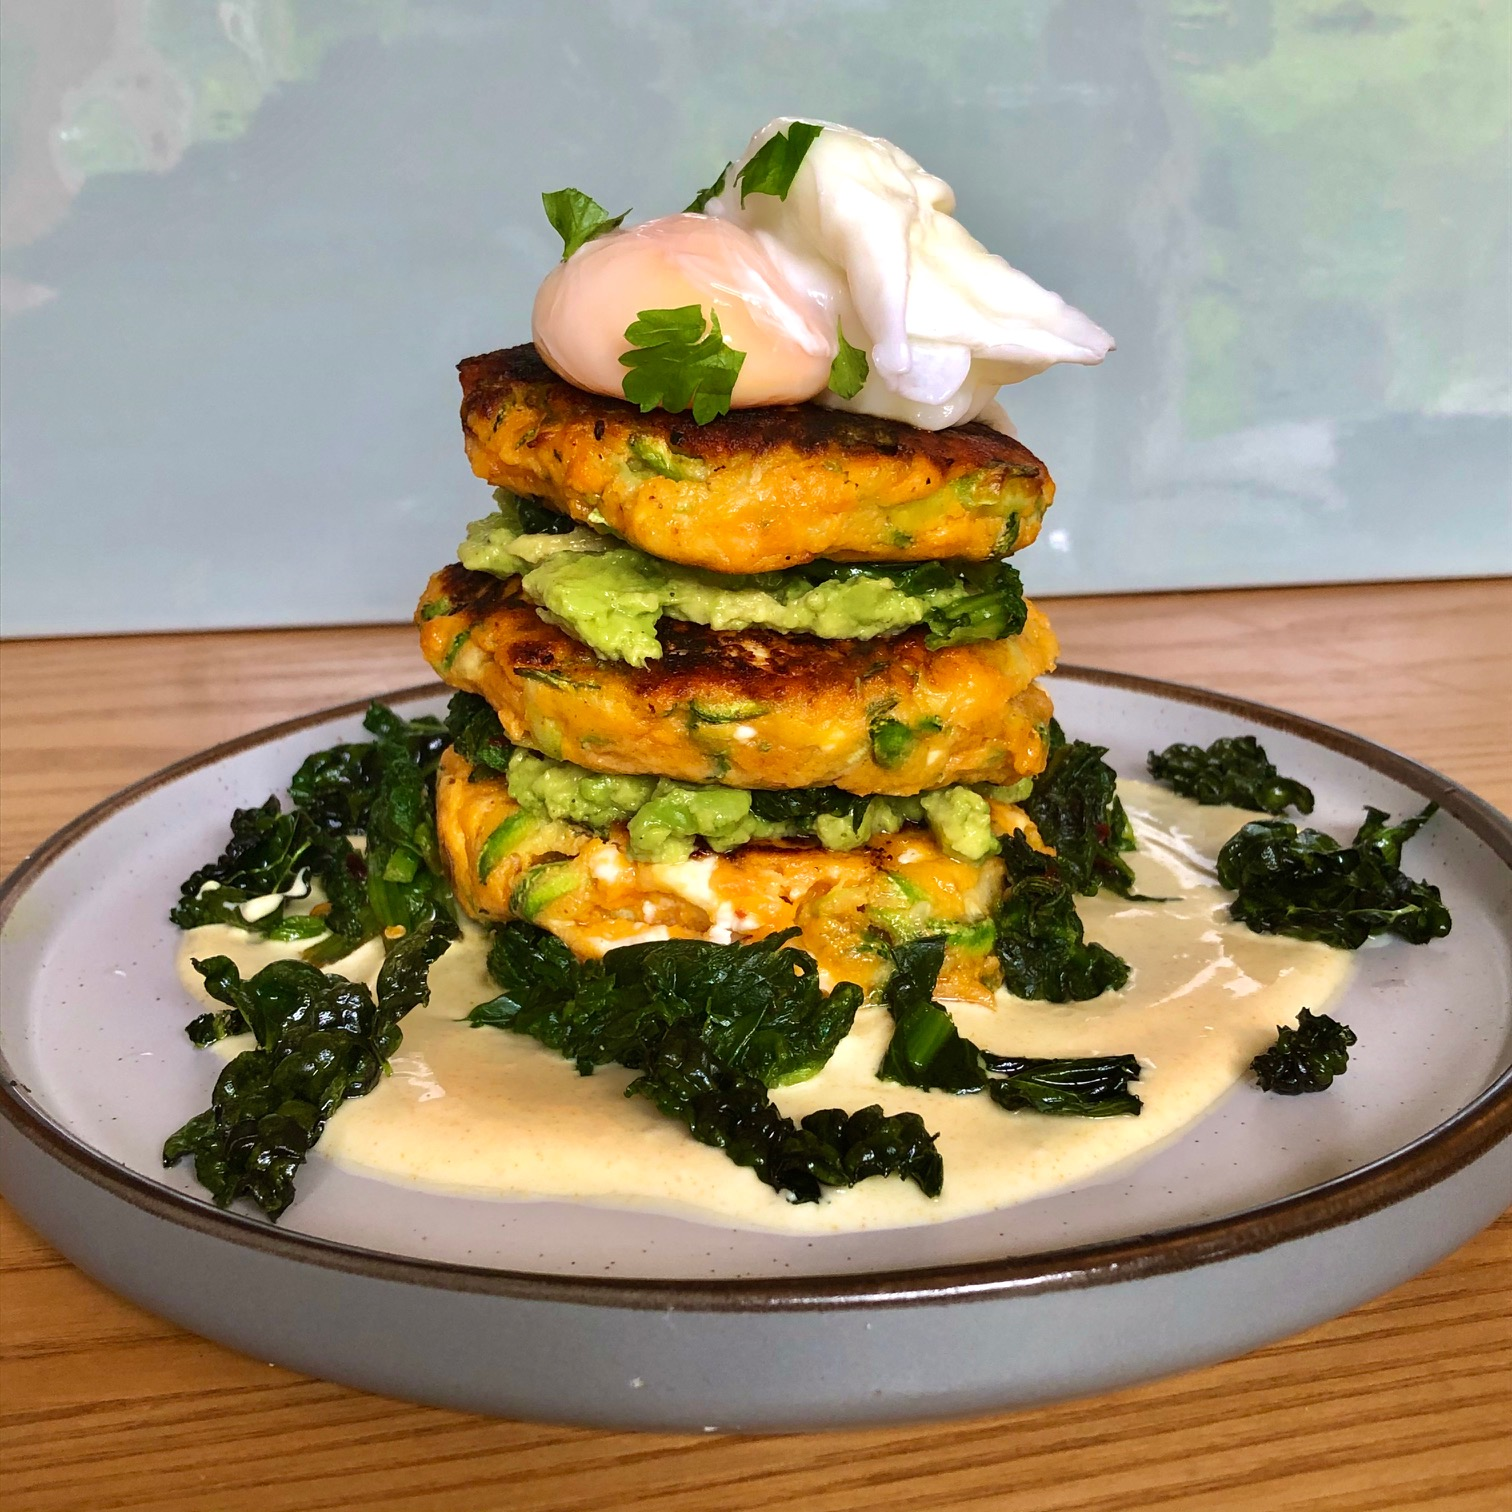 Day 76: Sweet Potato, Courgette & Feta Fritters with a Poached Egg